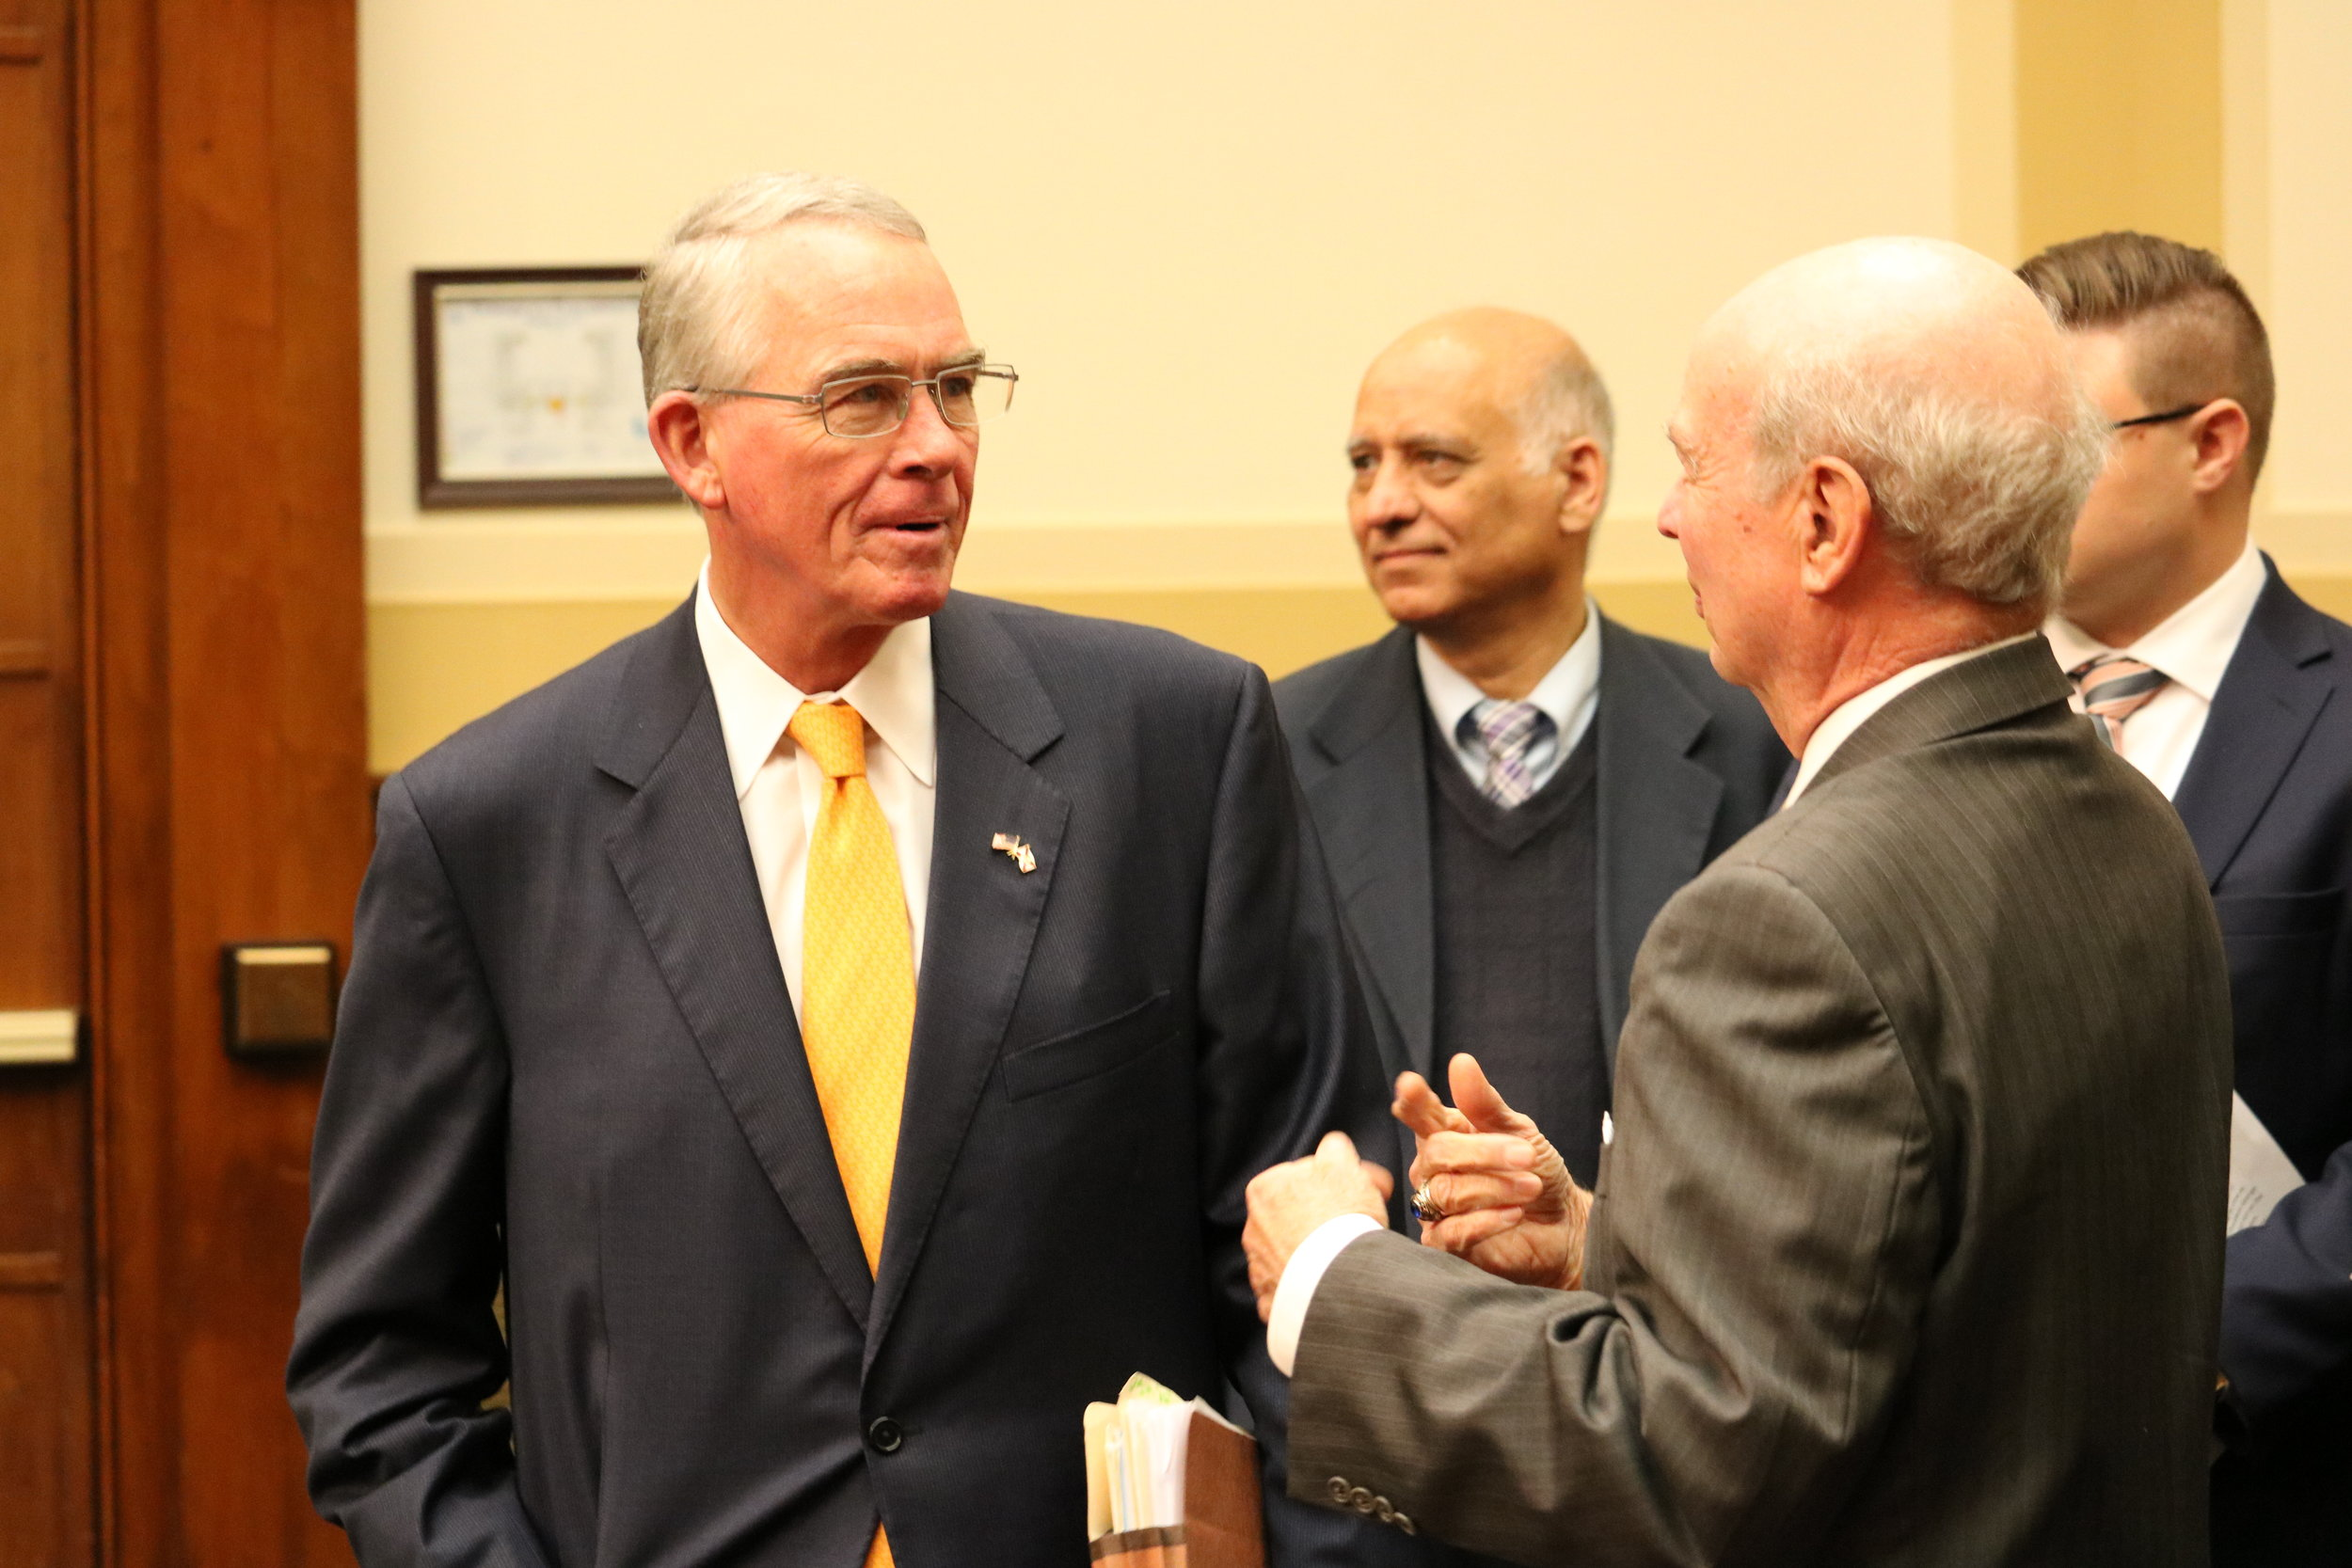 Rep. Francis Rooney (R-FL) and Mark Winter, Chairman, Religious Freedom Institute